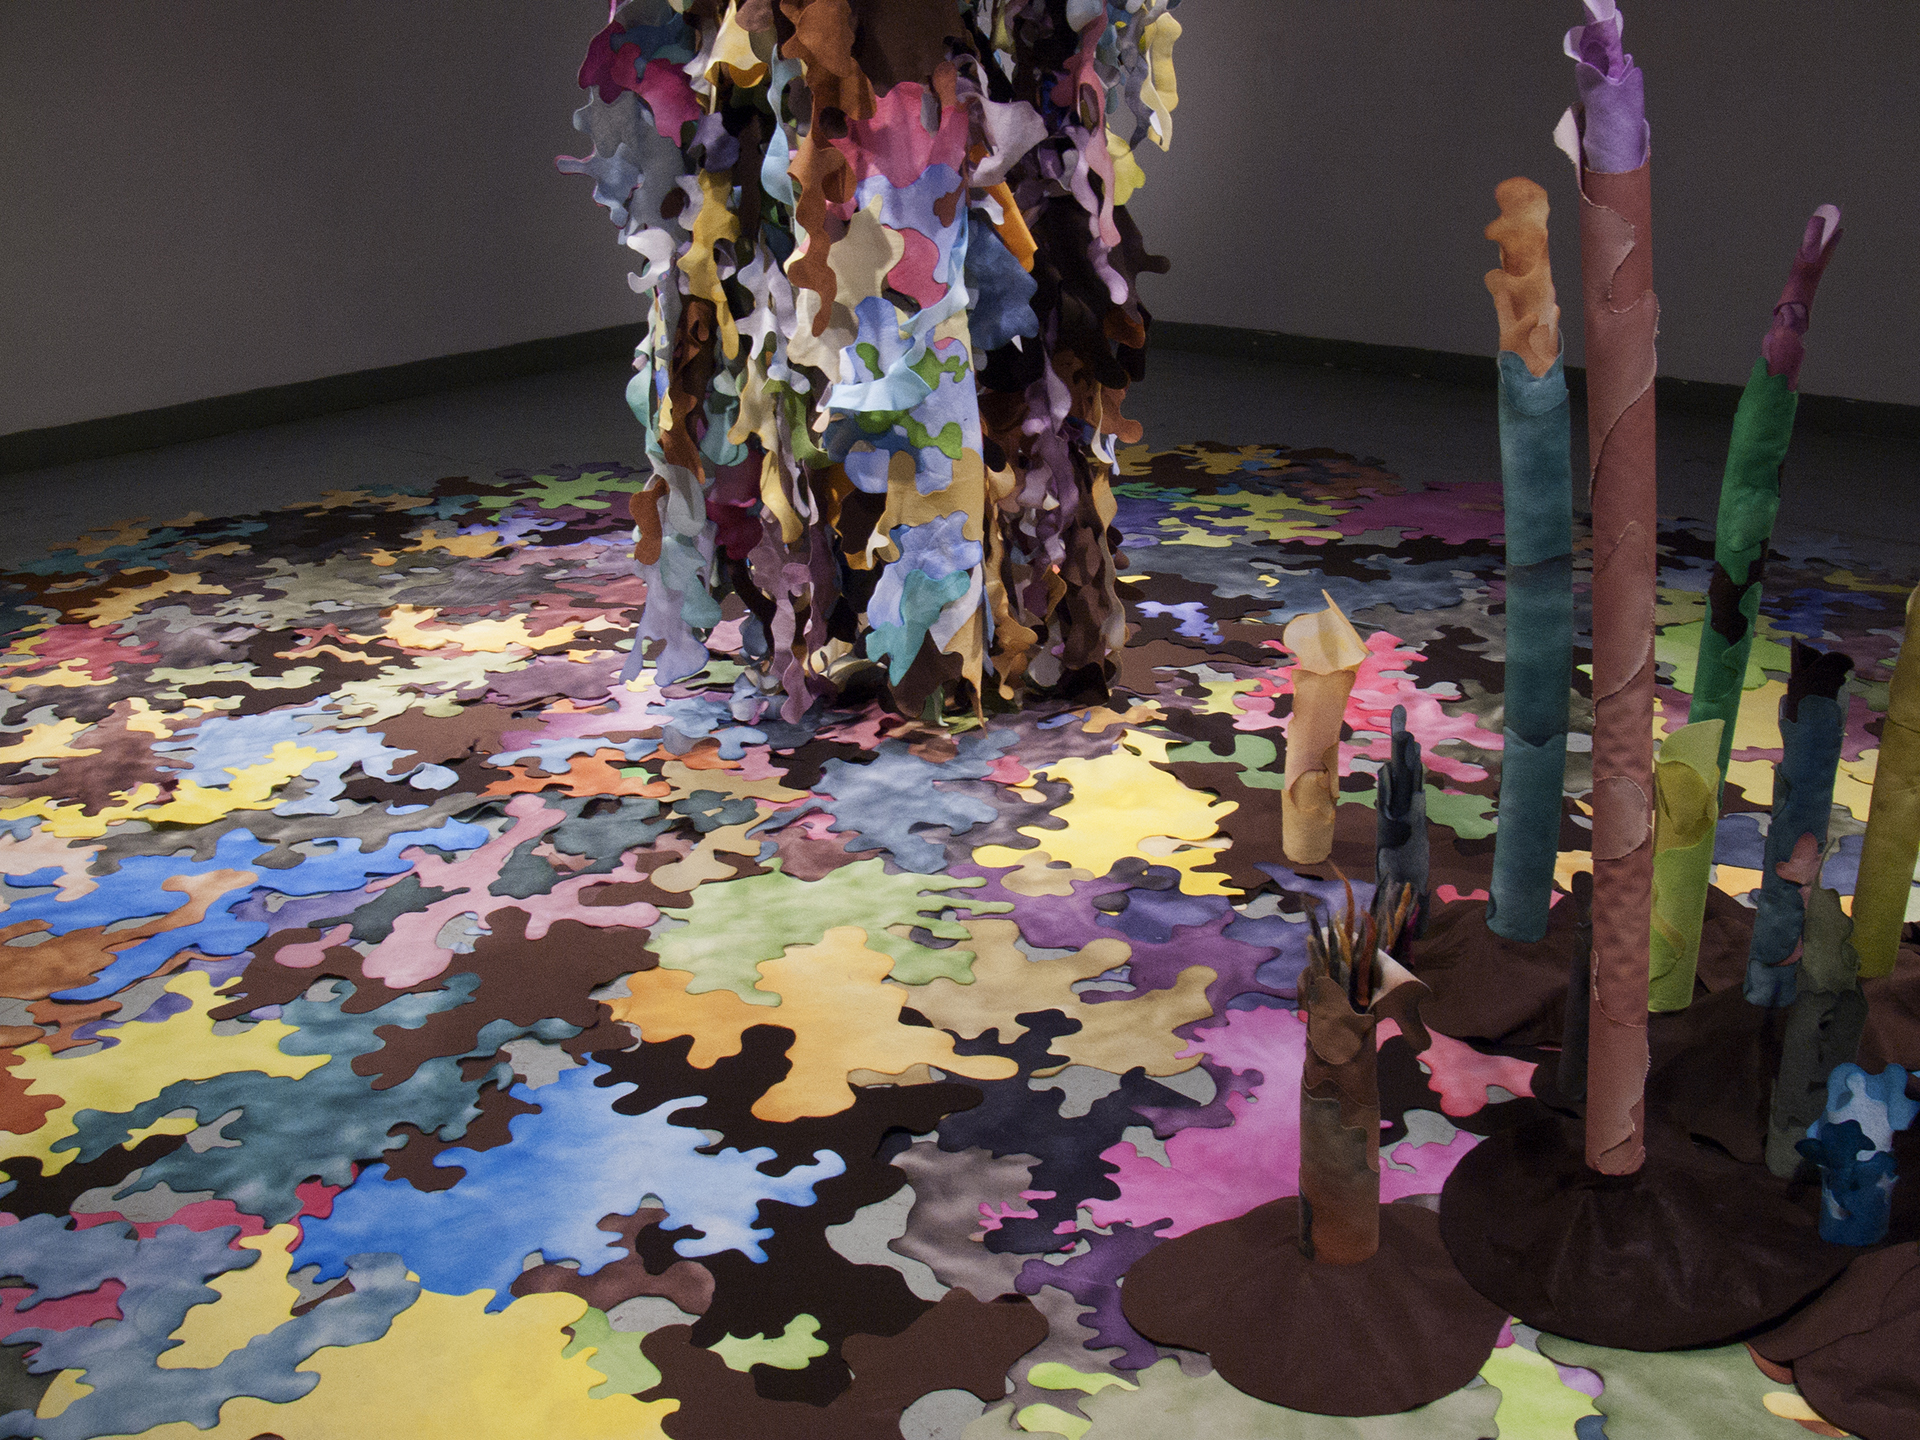 Entity,  2014, mixed media, 18' x 24' x 29'. Site-specific installation at 621 Gallery, Tallahassee, FL